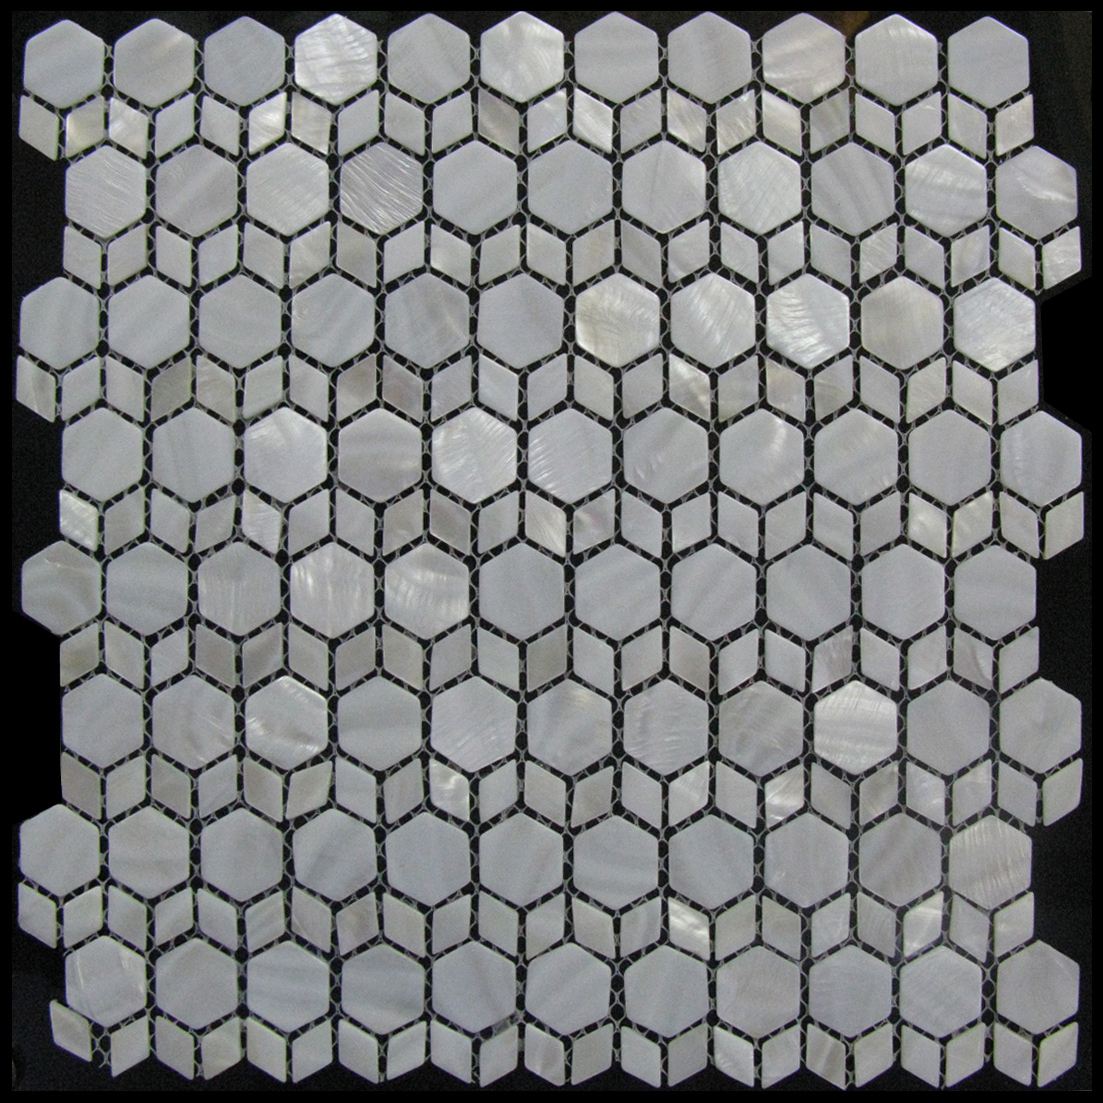 Tidepool Seaside Shell Mosaic Sheet, 1 tile